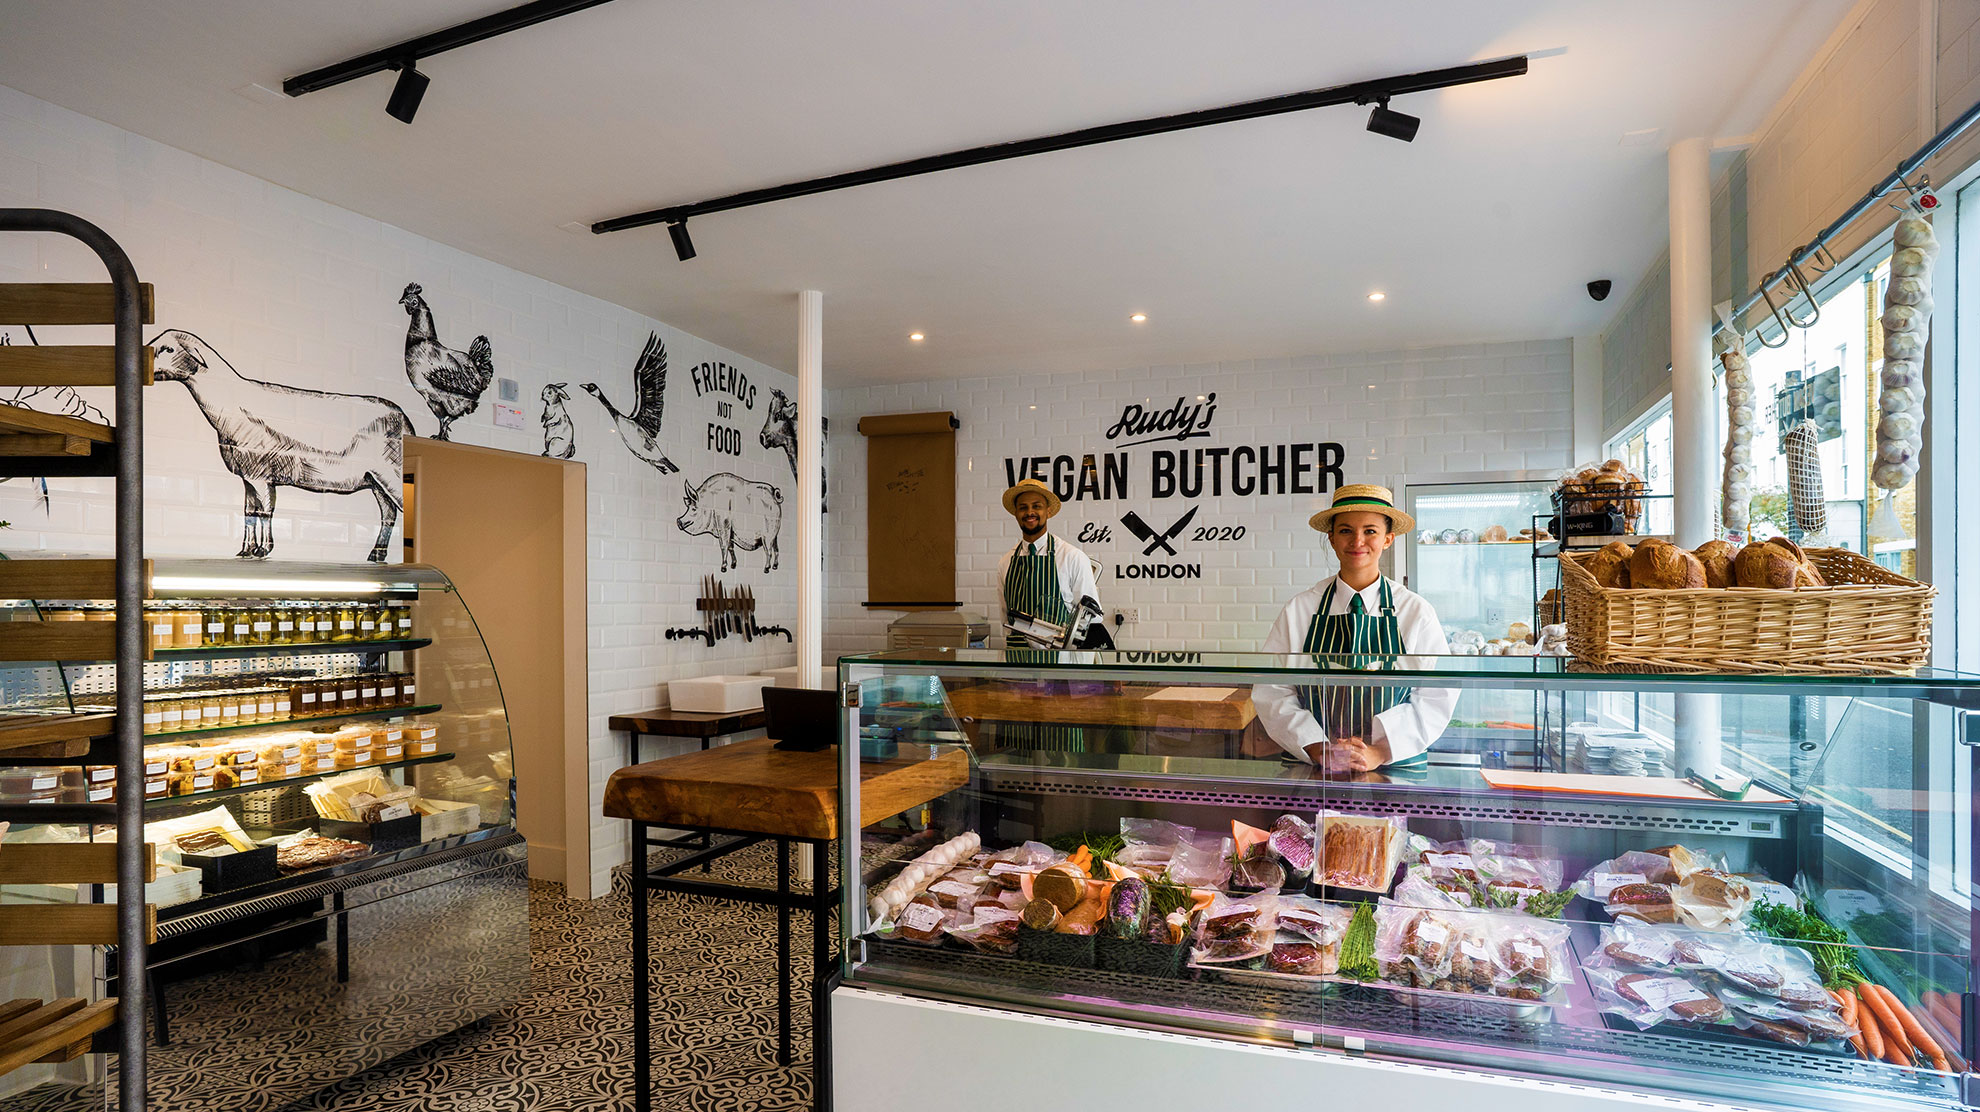 Vegan butcher turns food world on its head